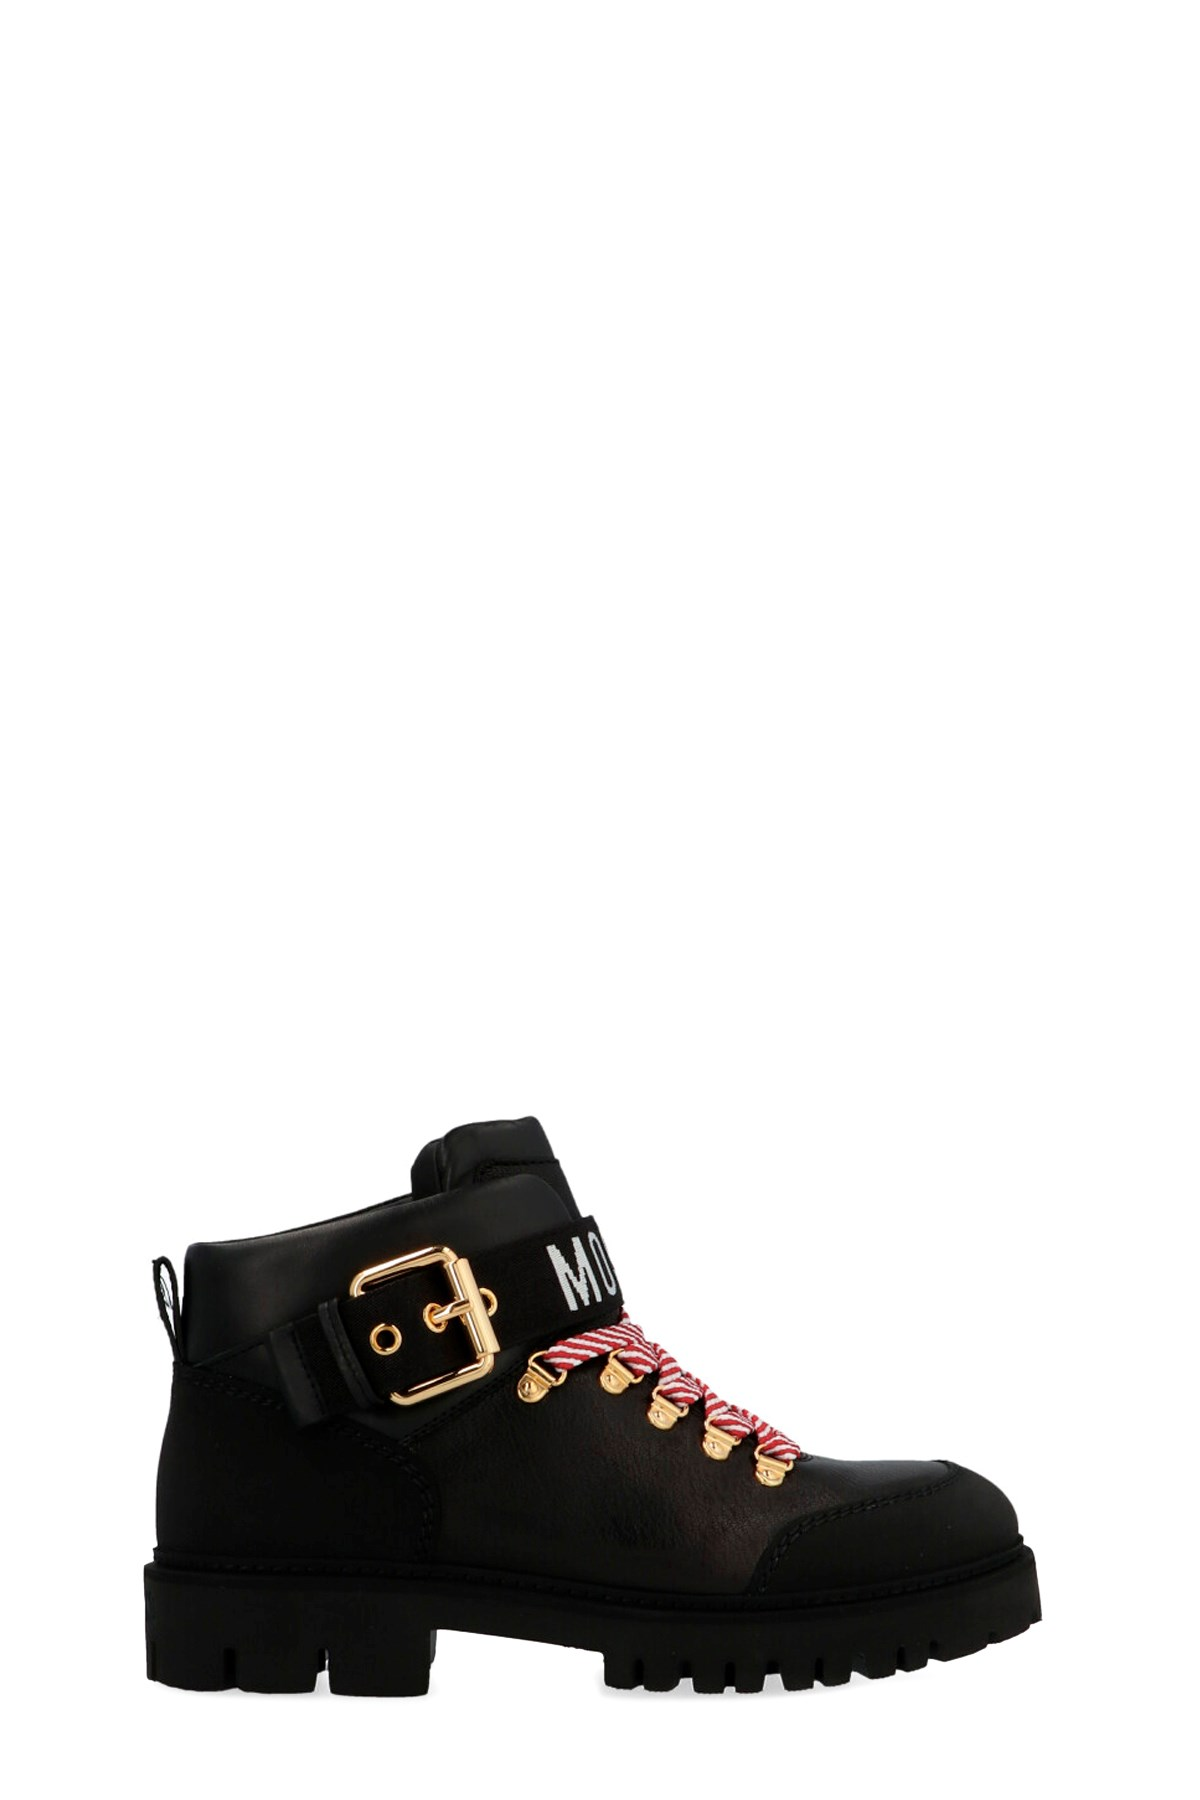 moschino Logo ankle boots available on